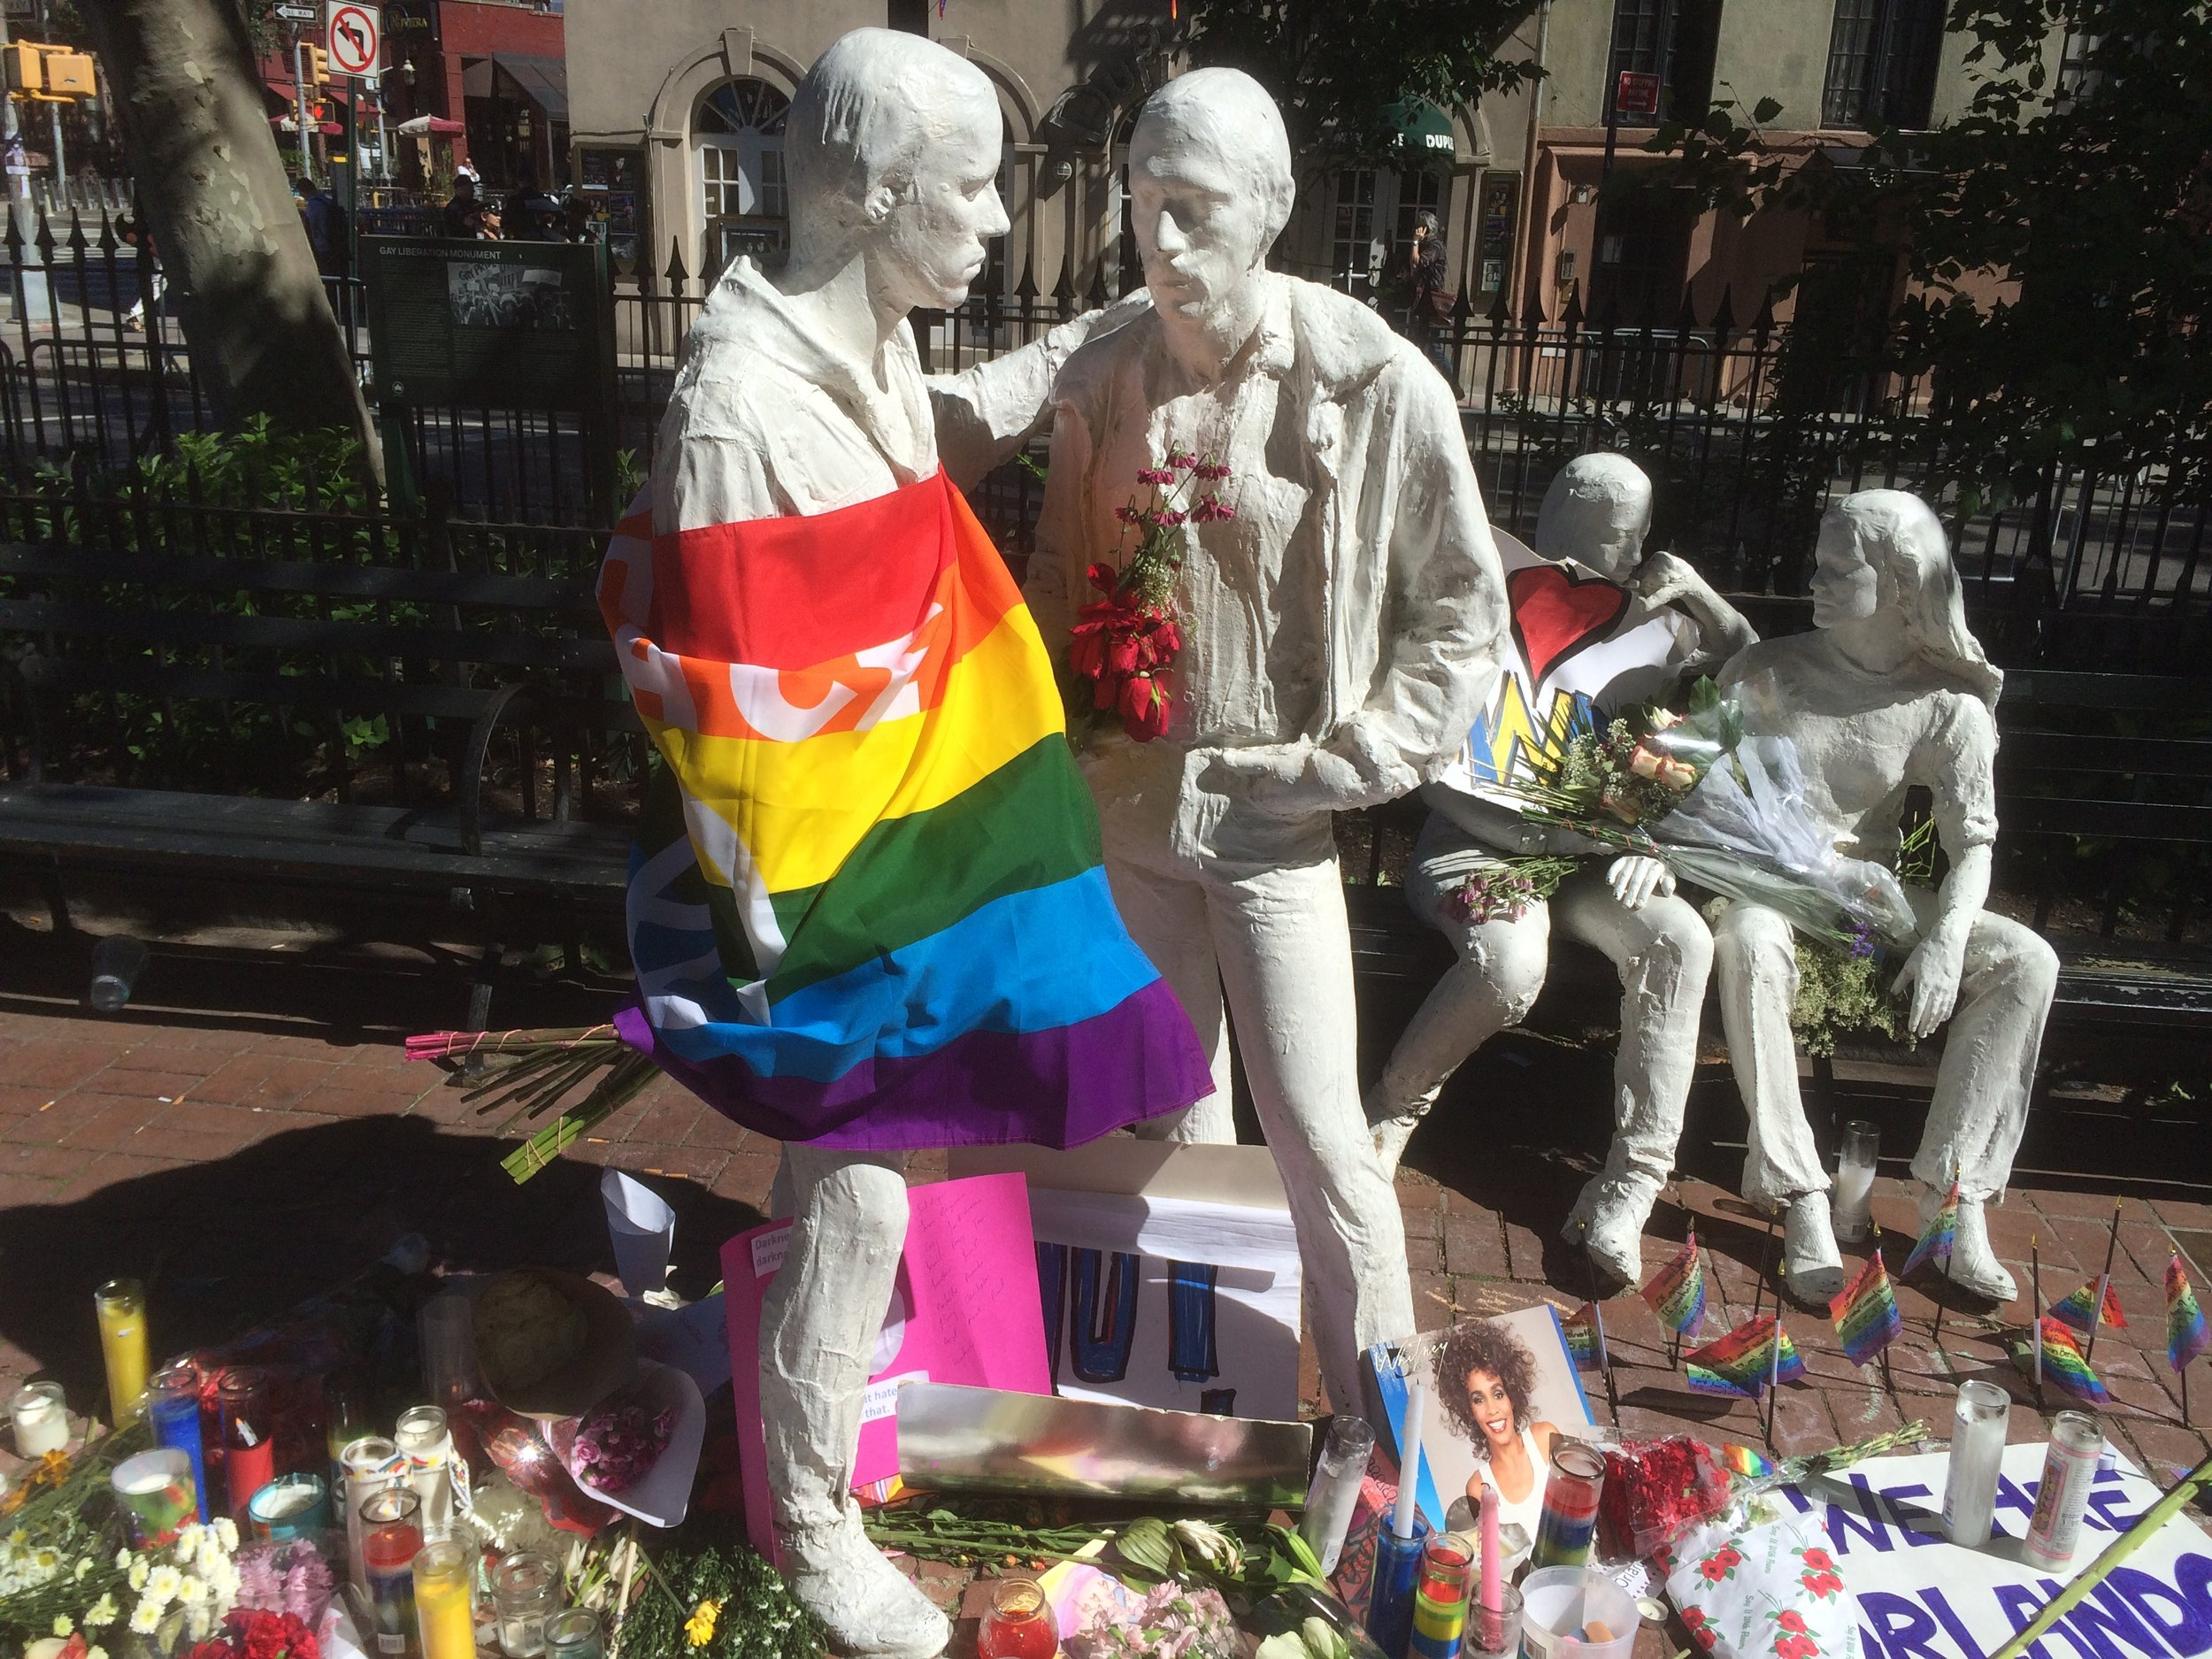 George Segal sculpture in Christopher Park, Four Figures, draped in colors after the June 2016 Orlando nightclub attack.